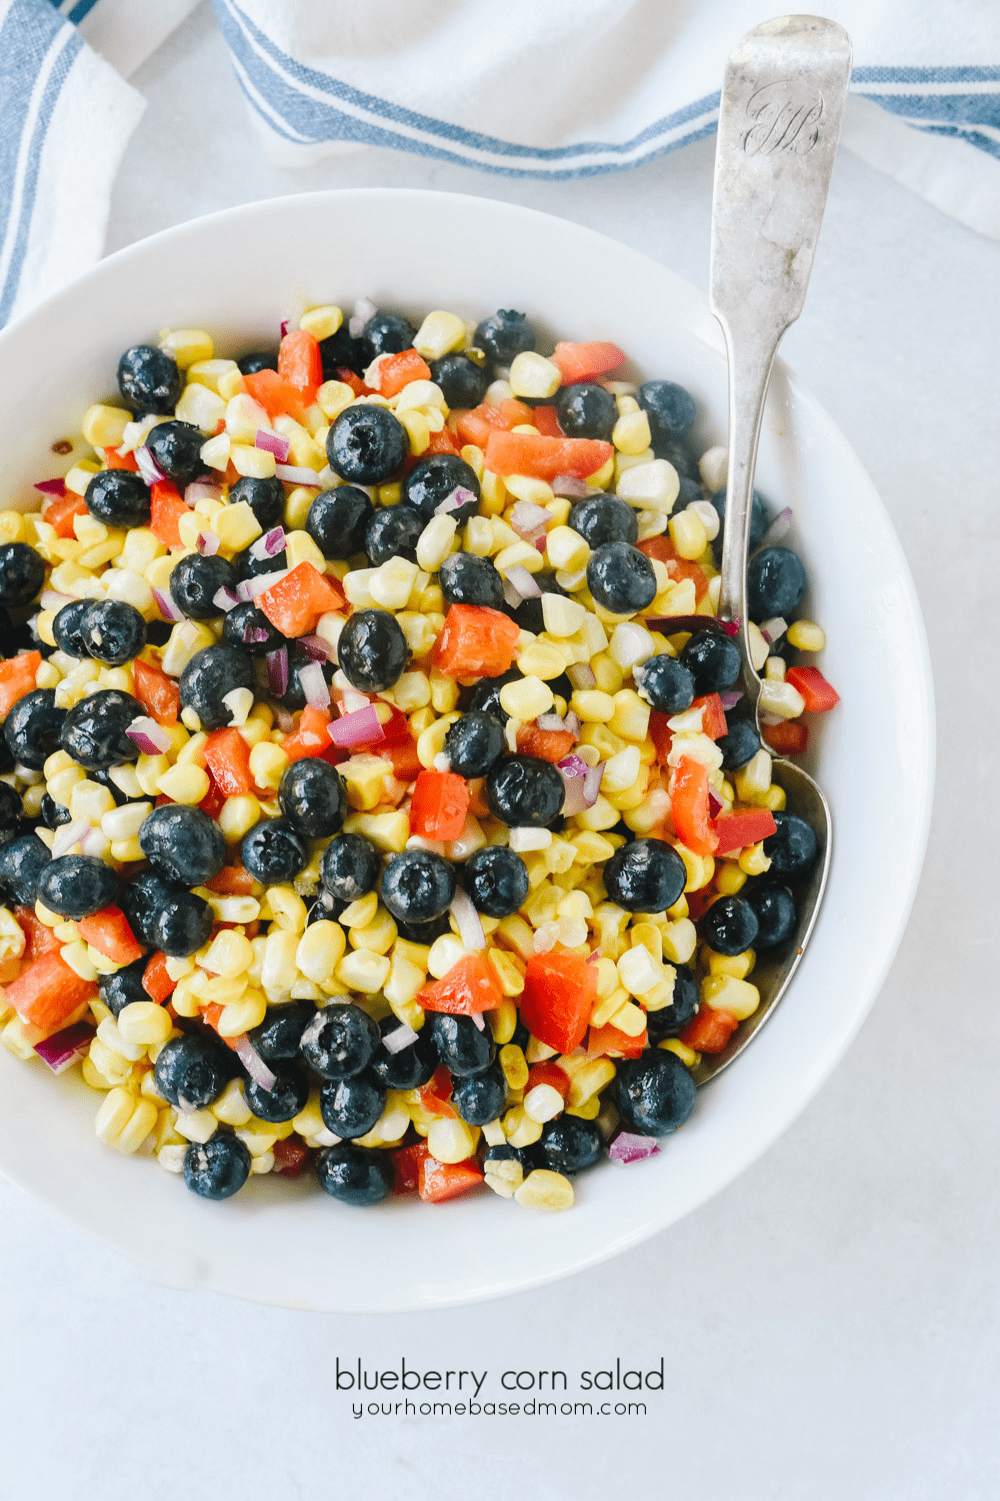 blueberry corn salad in a white bowl